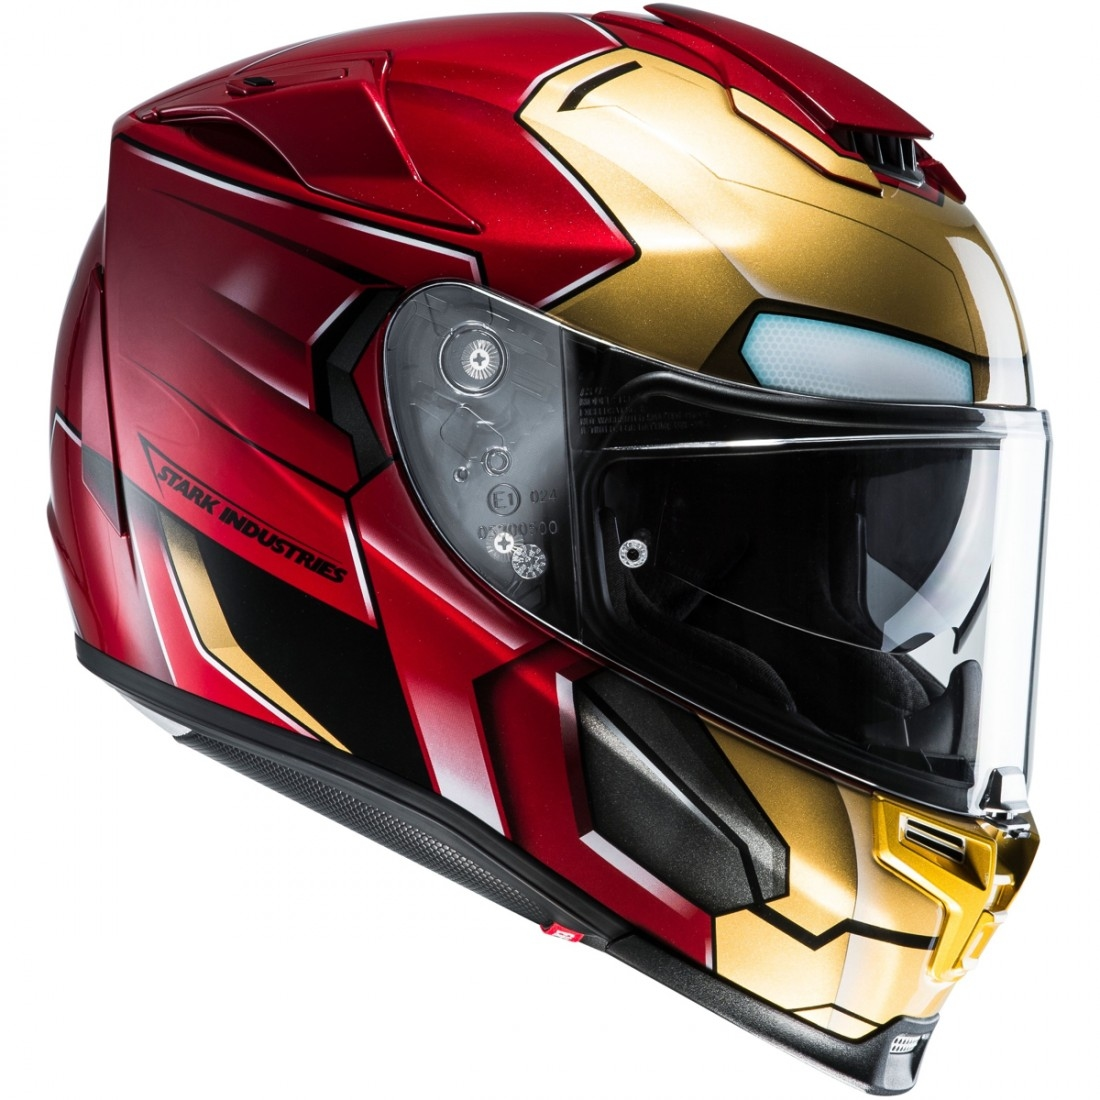 Capacete HJC RPHA 70 Iron Man Homecoming · Motocard d632746a870